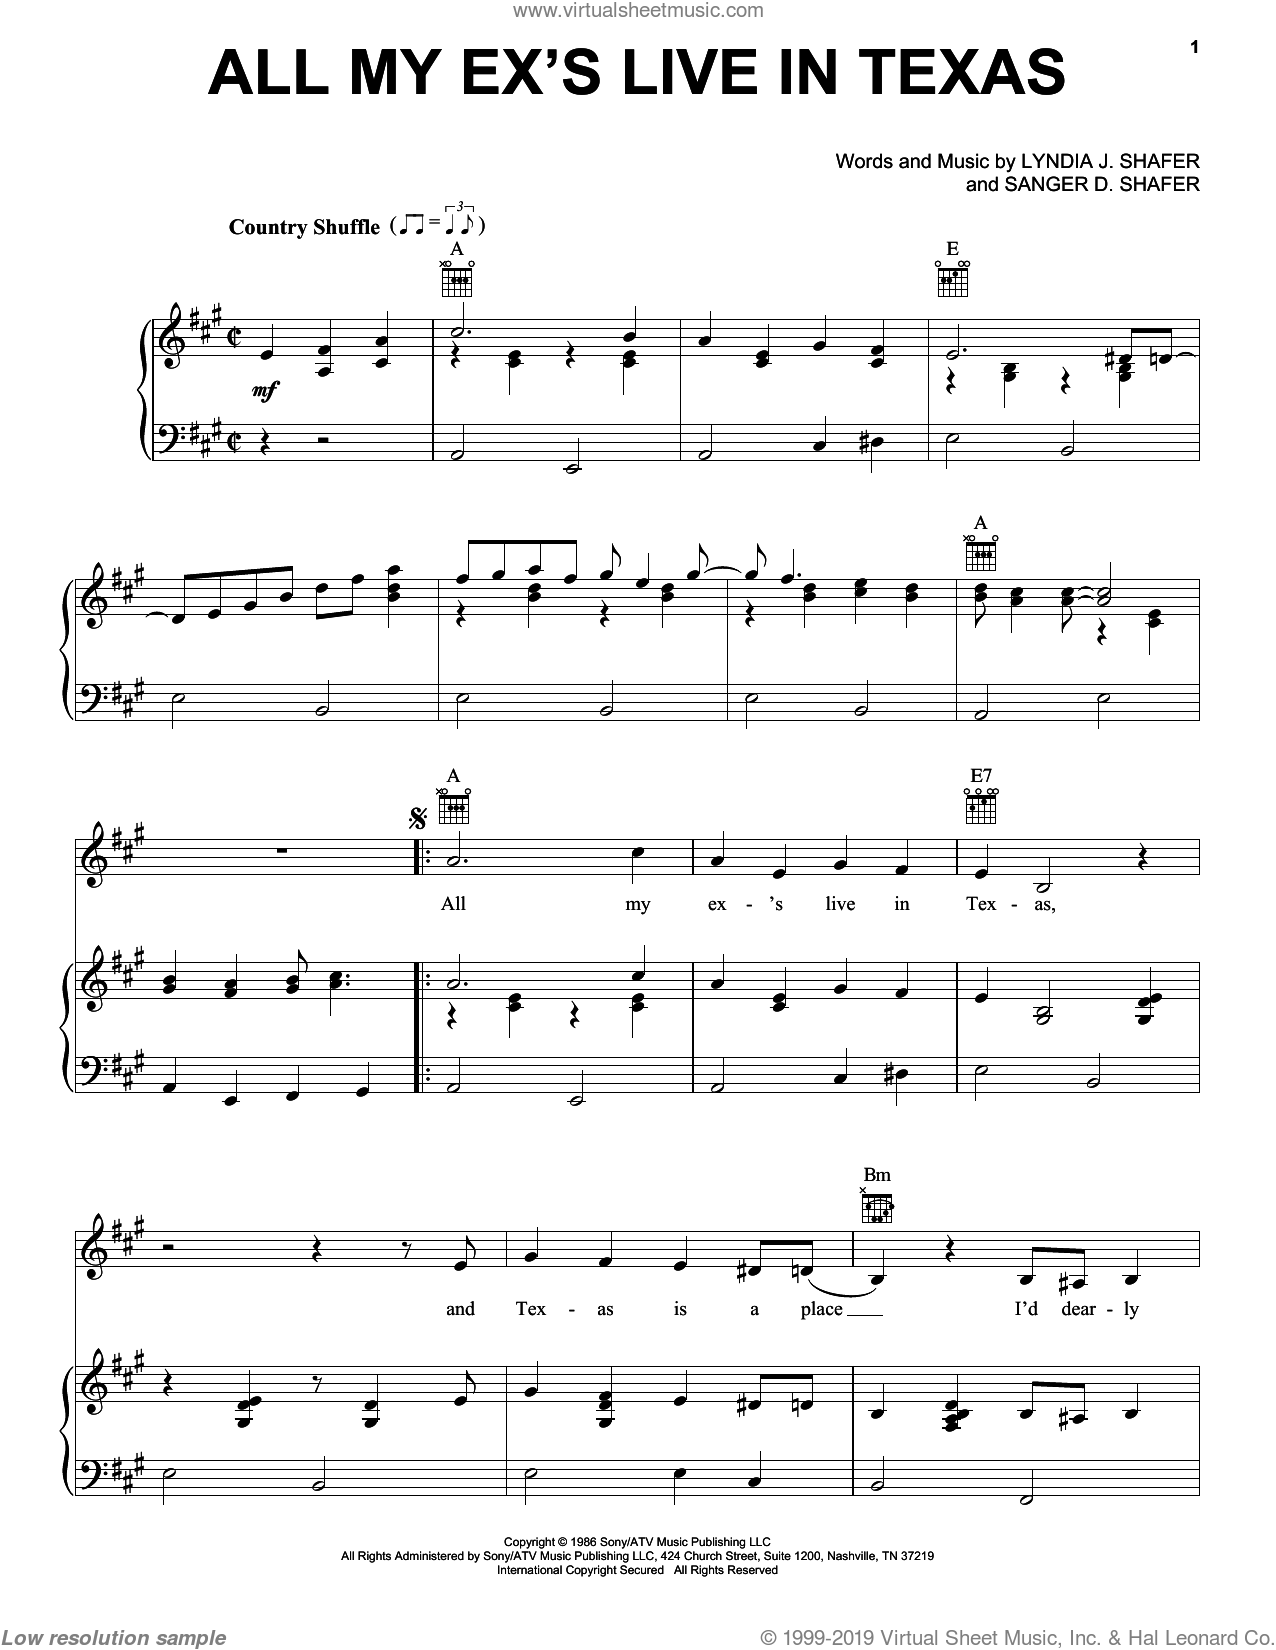 All My Ex's Live In Texas sheet music for voice, piano or guitar by George Strait, Lyndia J. Shafer and Sanger D. Shafer, intermediate skill level